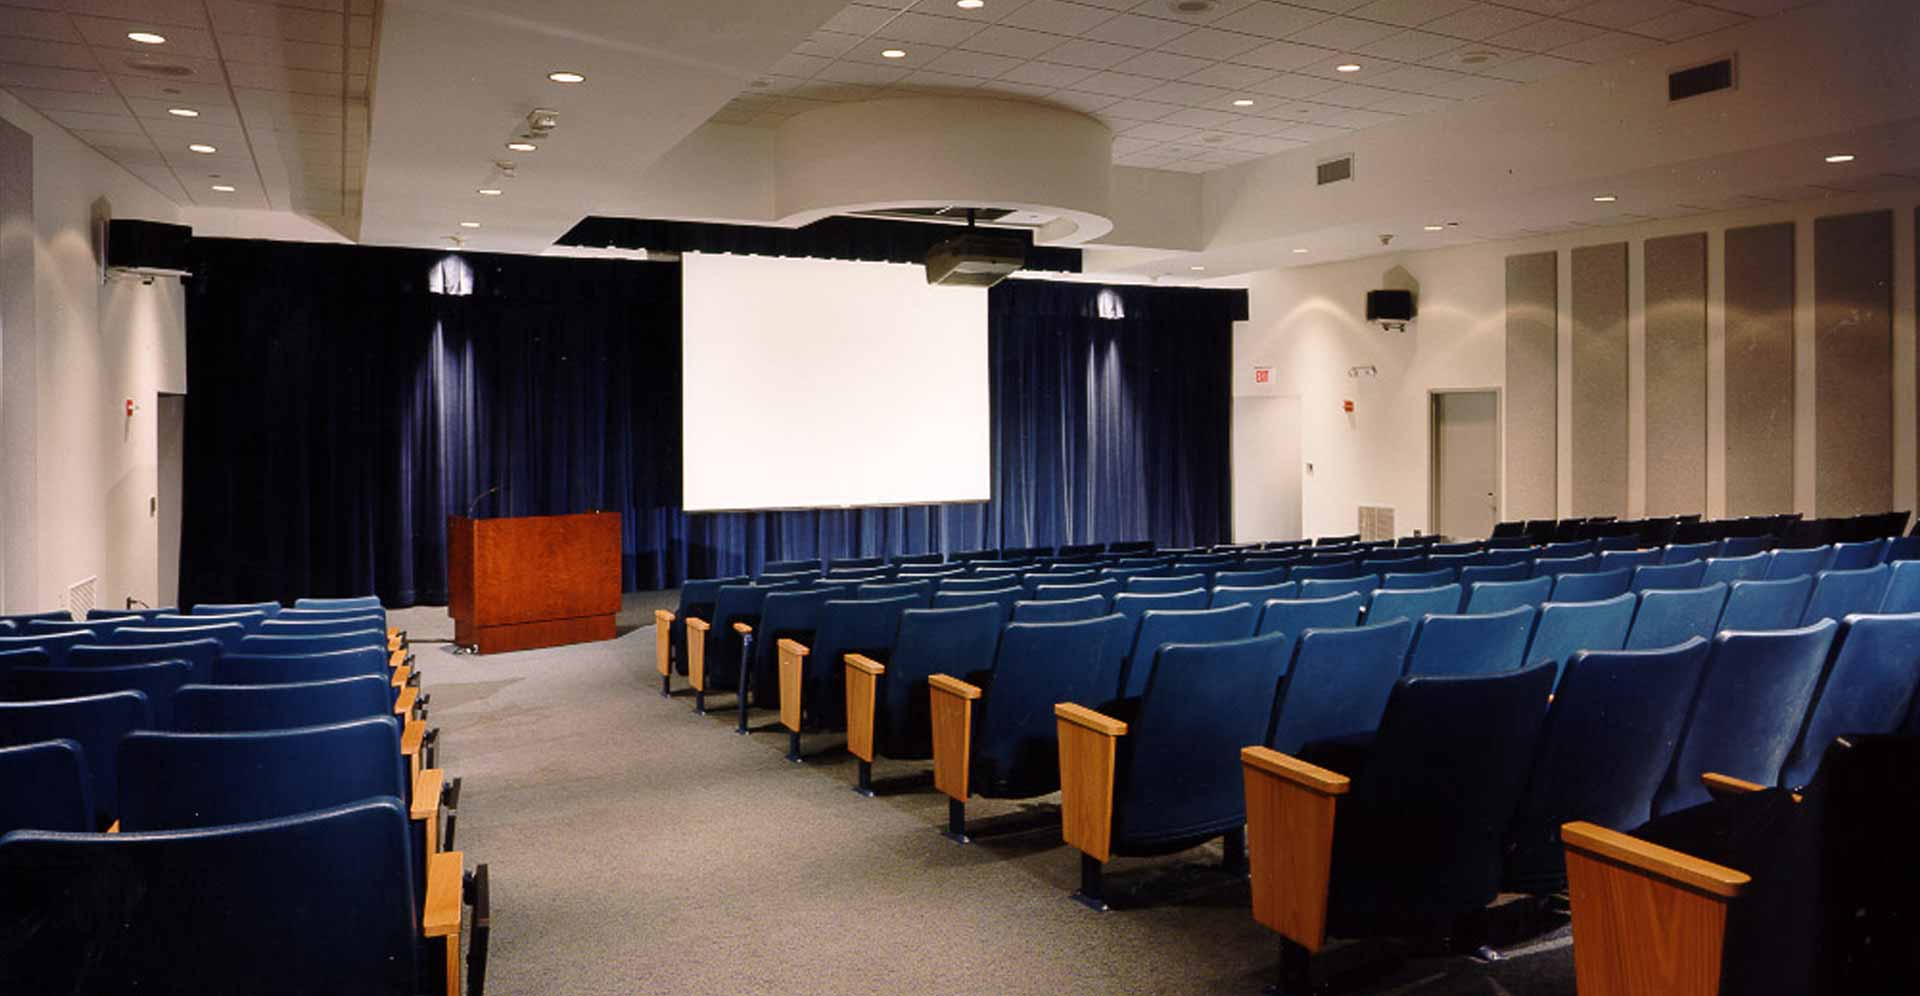 HOSPITAL-OF-ST-RAPHAEL-SURGICAL-CENTER-AUDITORIUM.jpg